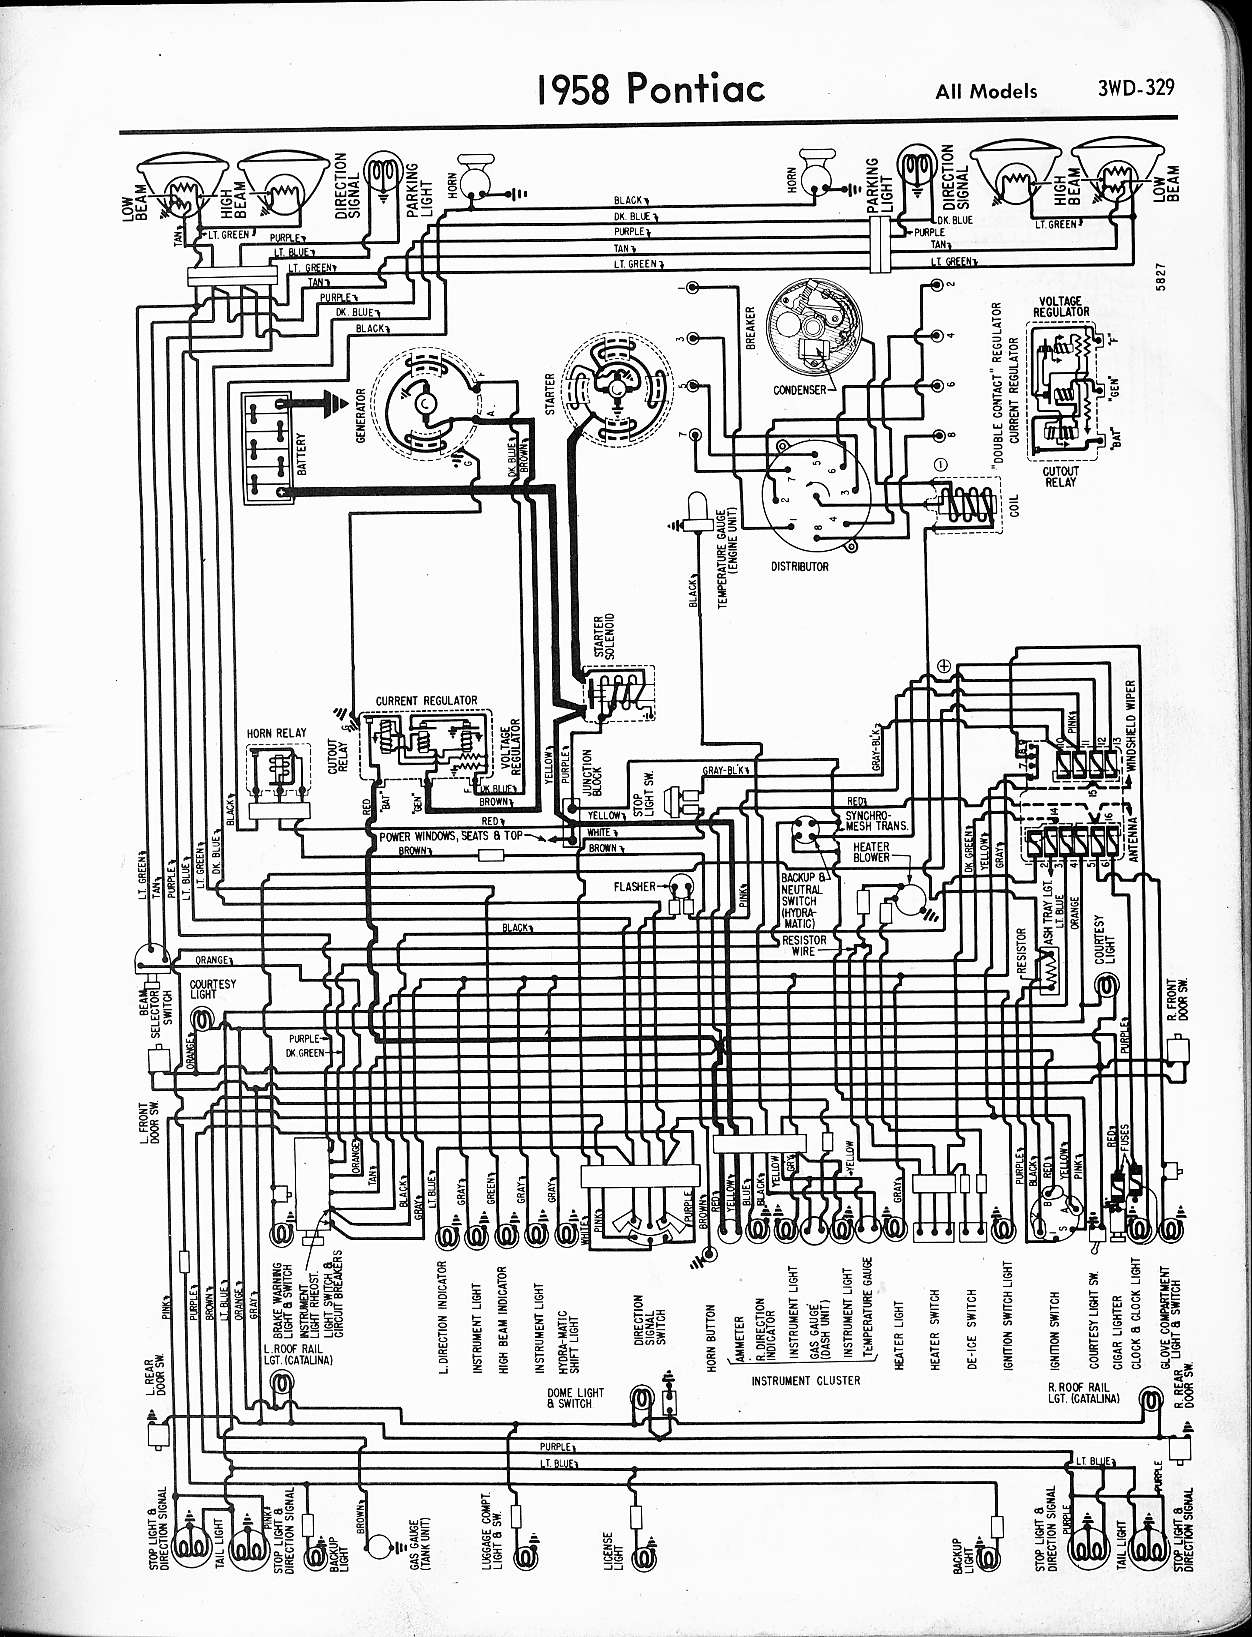 1995 Pontiac Bonneville Fuse Box Wiring Library Diagram For 2000 Grand Prix 1958 Schematics Parts